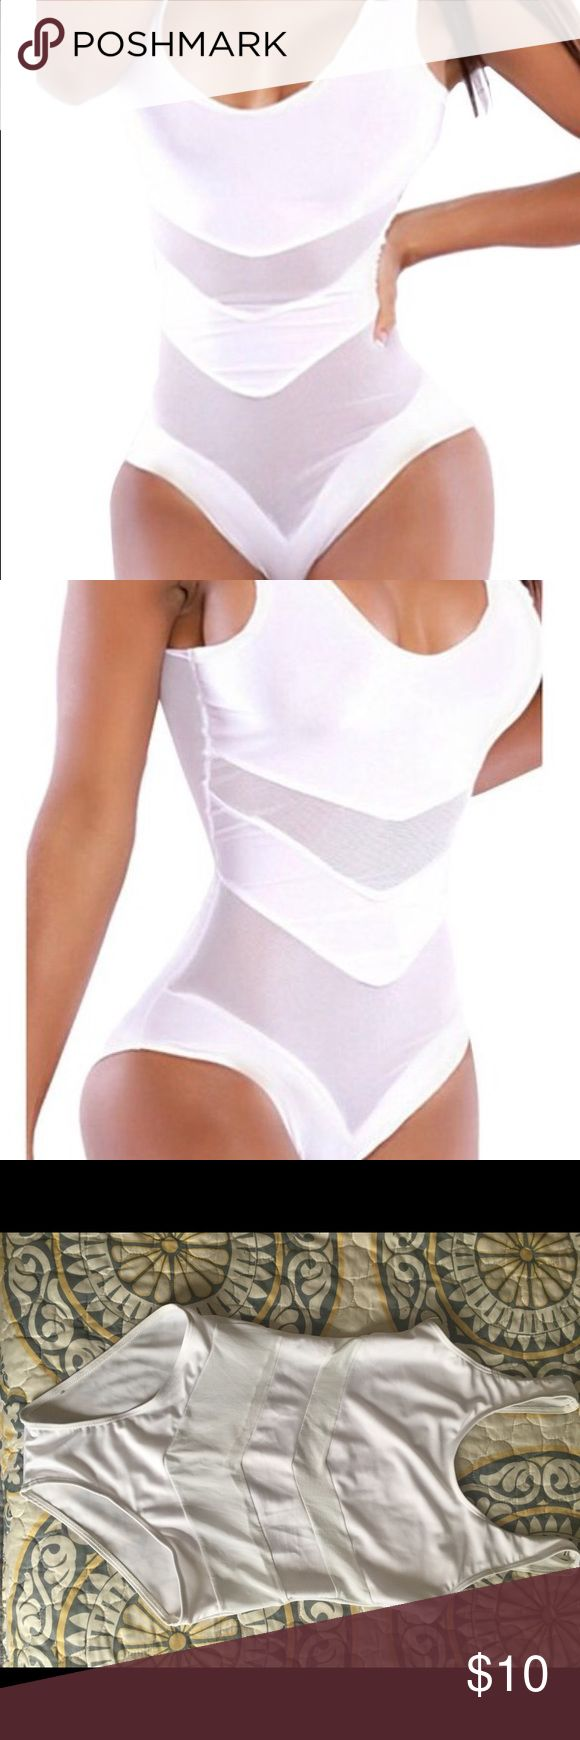 White one piece swimsuit White with mesh inserts one piece swimsuit. Size large. Swim One Pieces